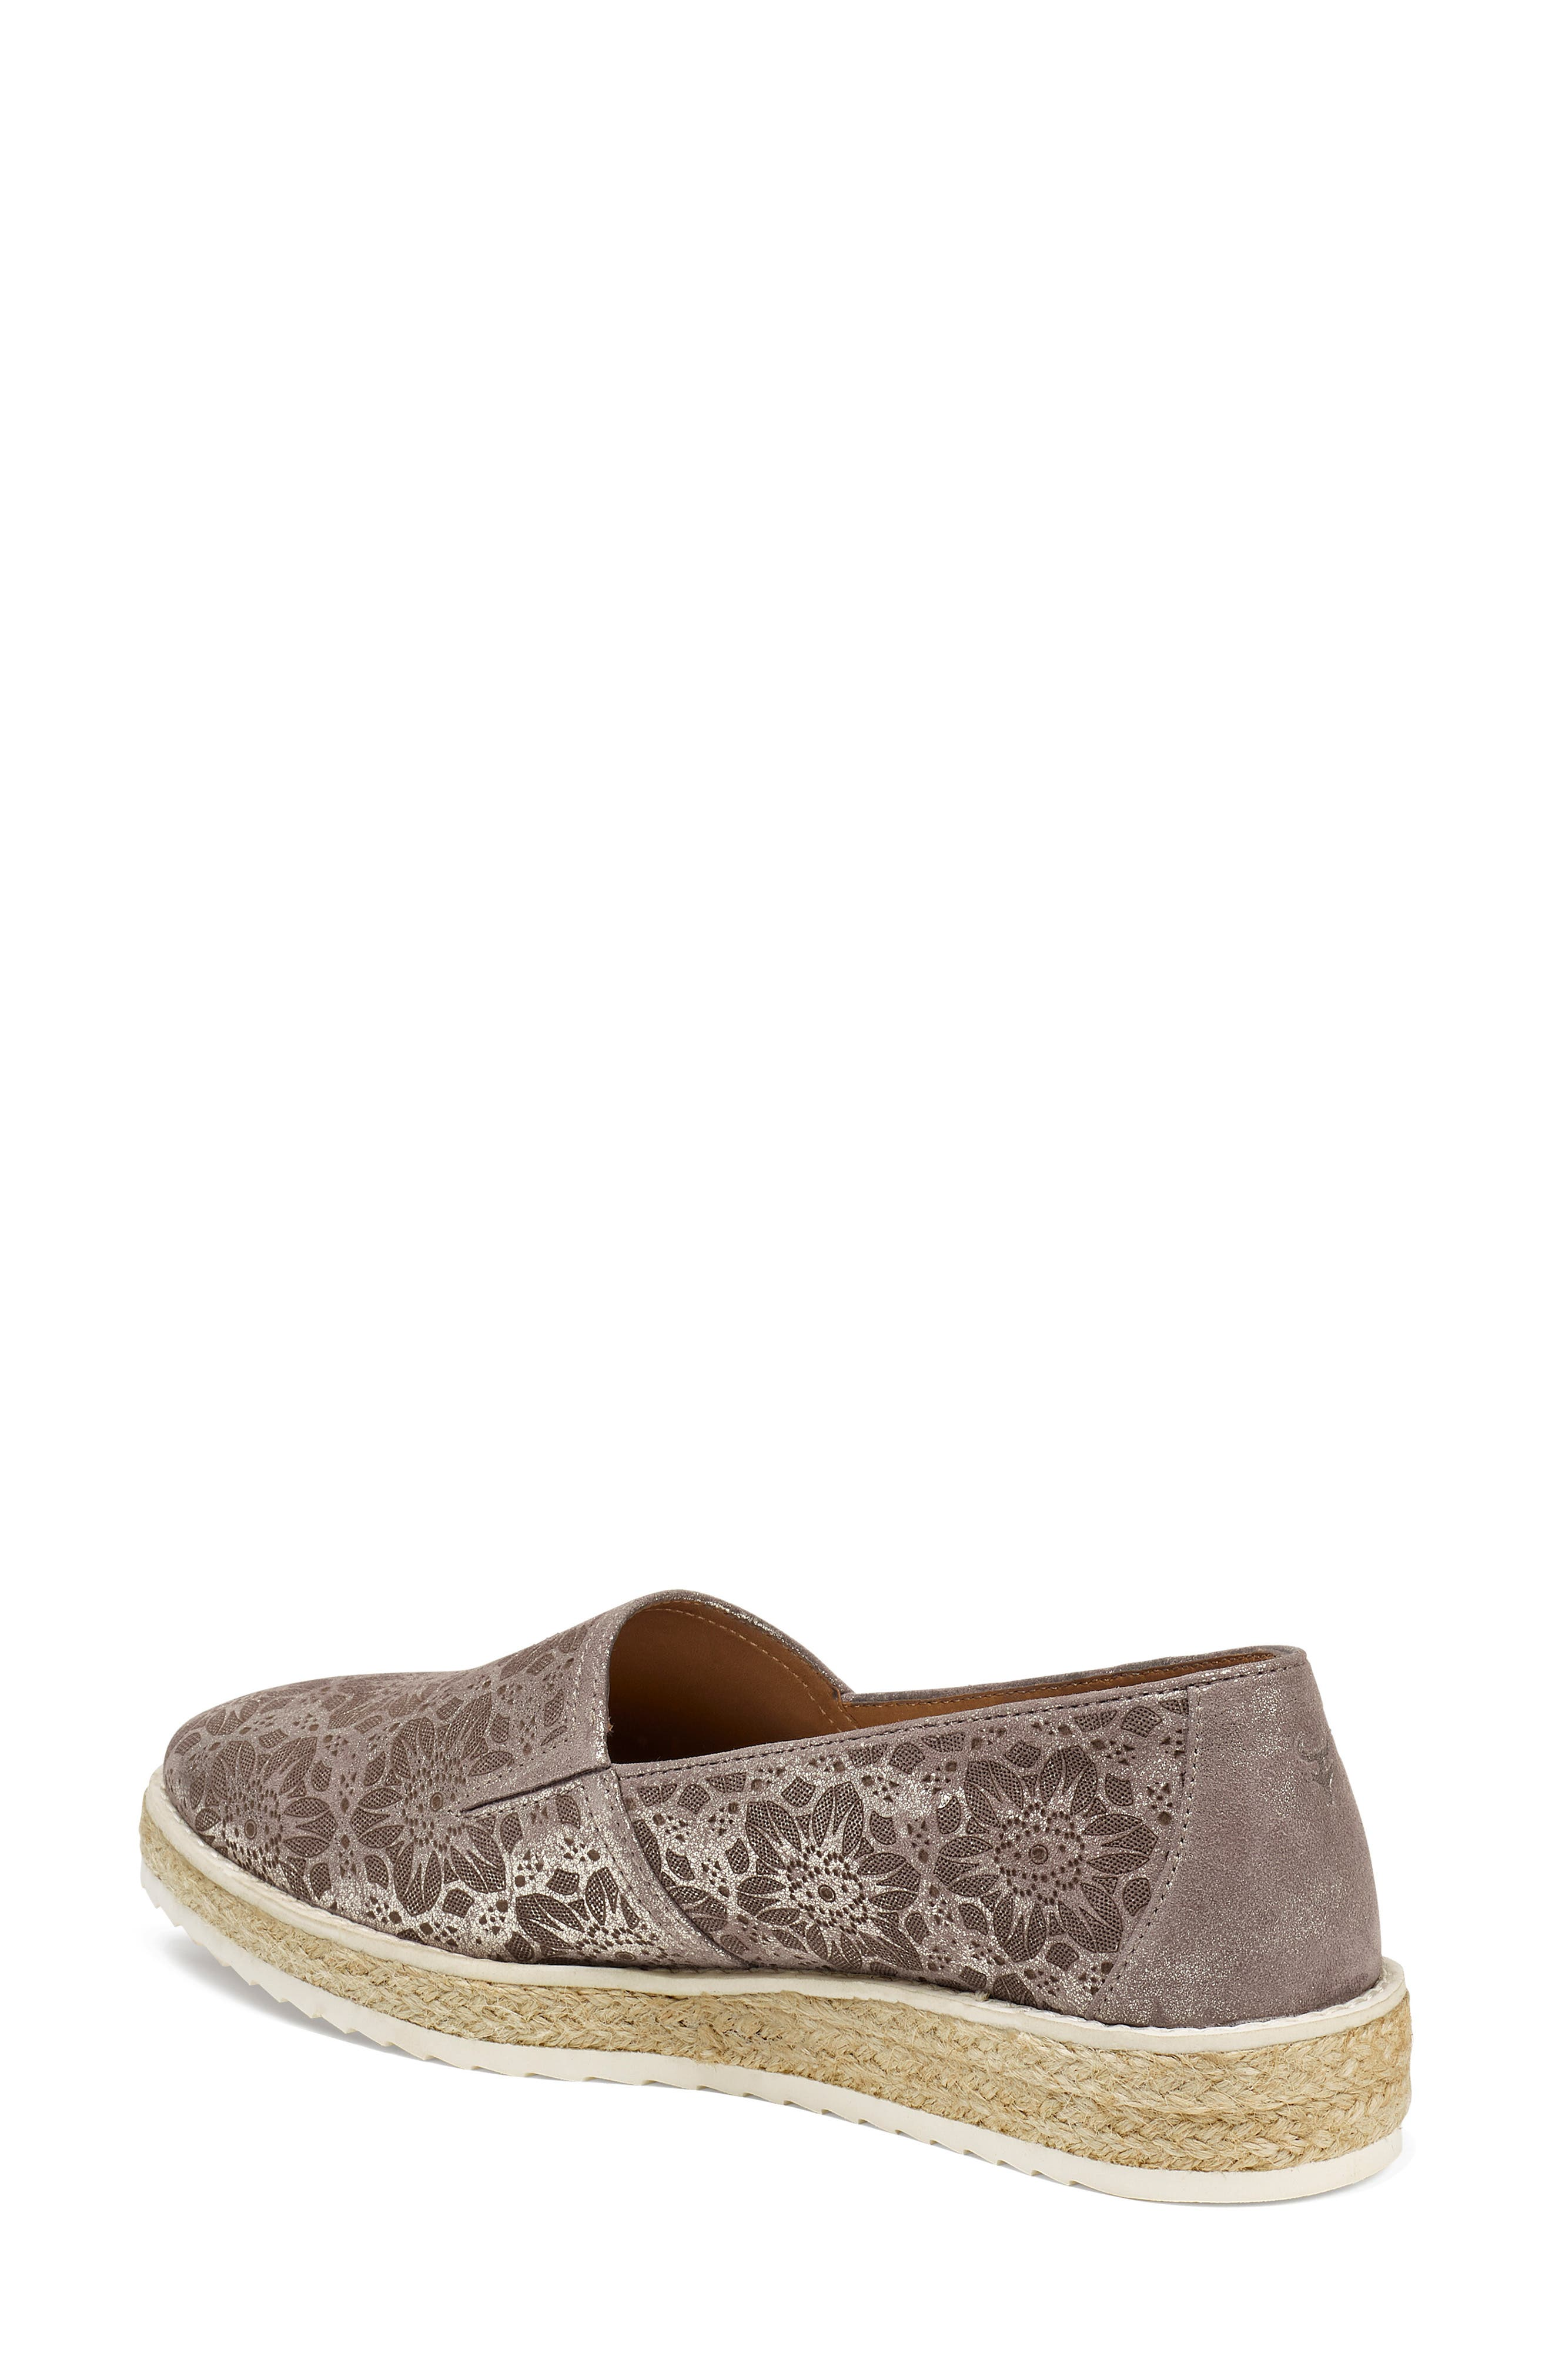 Cailyn Flat,                             Alternate thumbnail 2, color,                             PEWTER METALLIC SUEDE